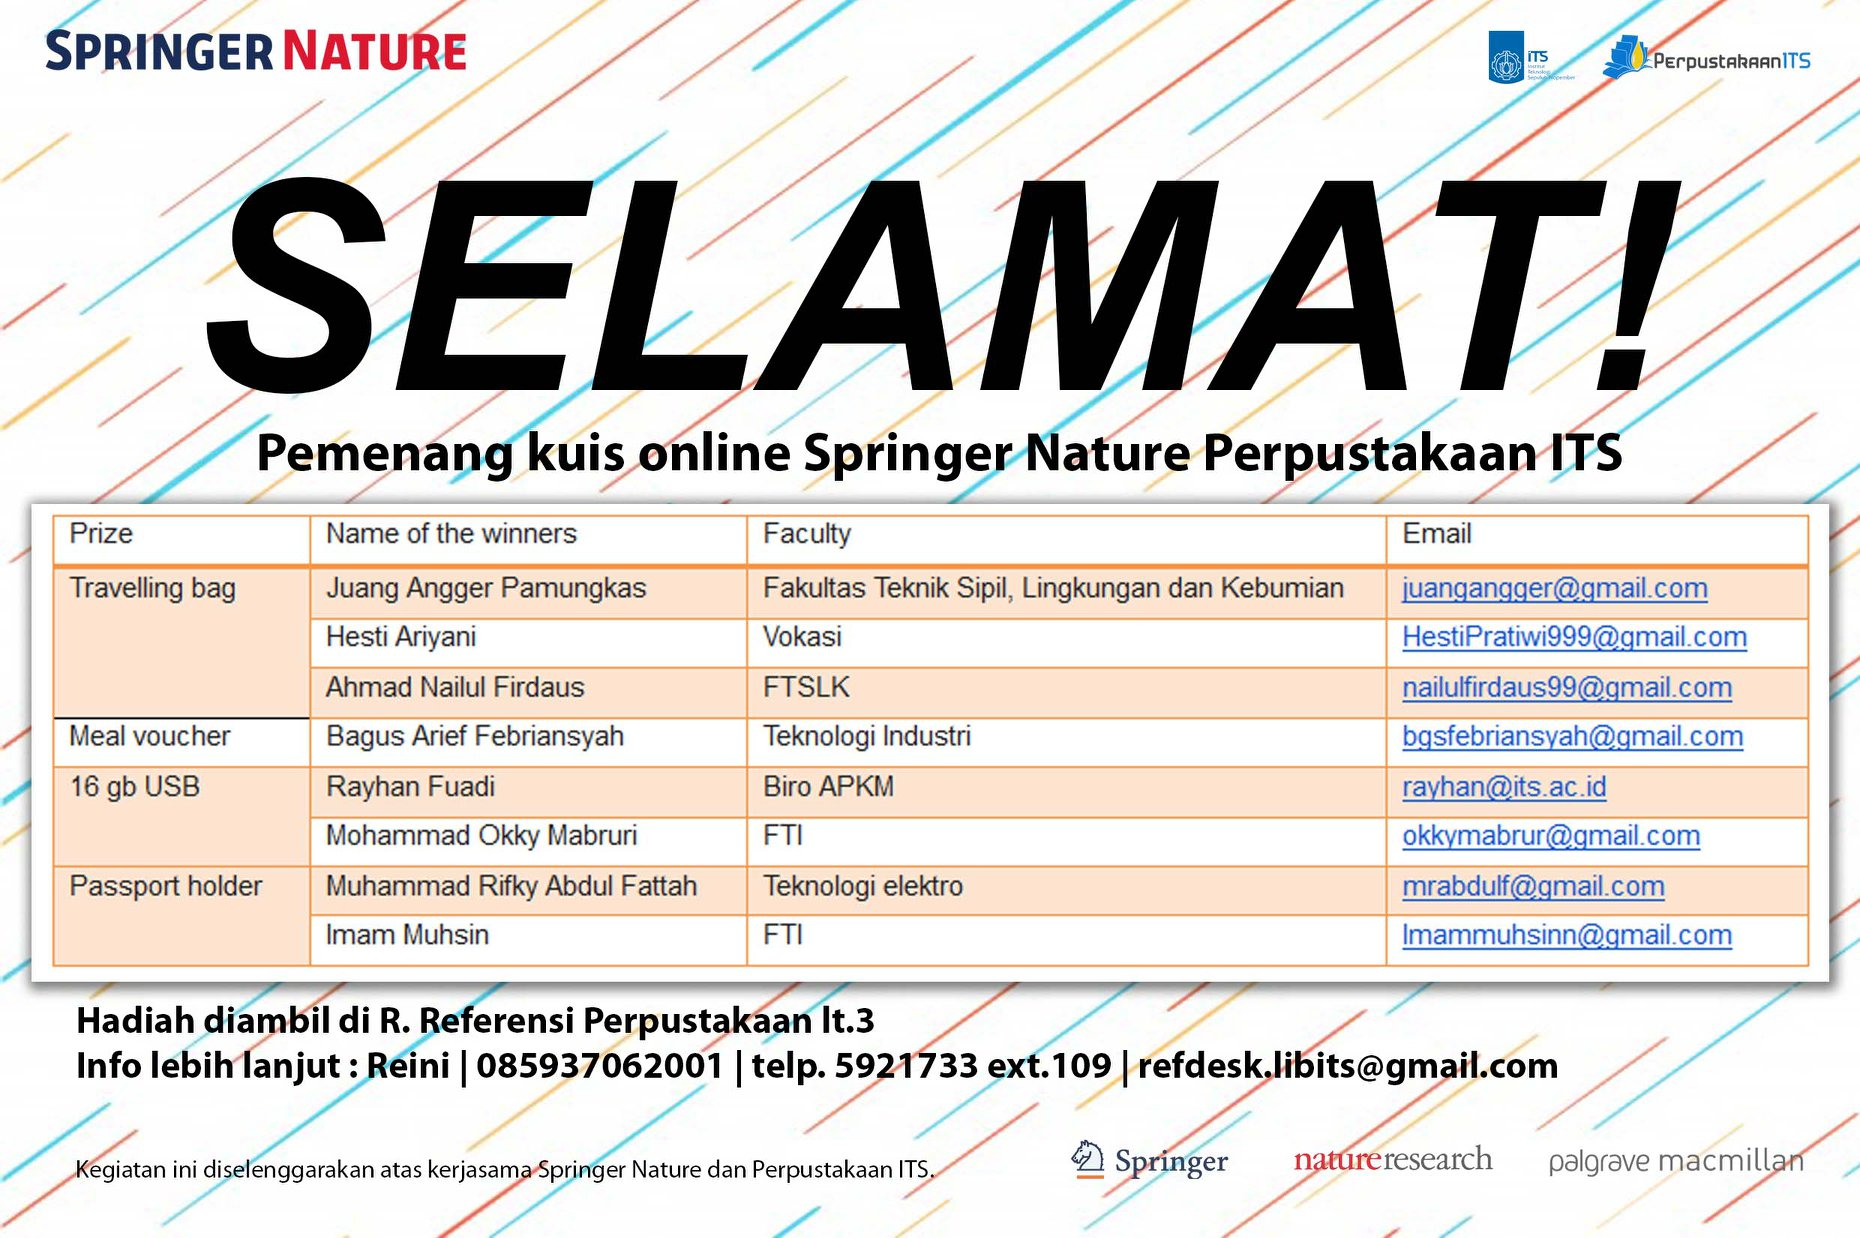 Pemenang Kuis Online Springer Nature Perpustakaan ITS ( Tahap I)